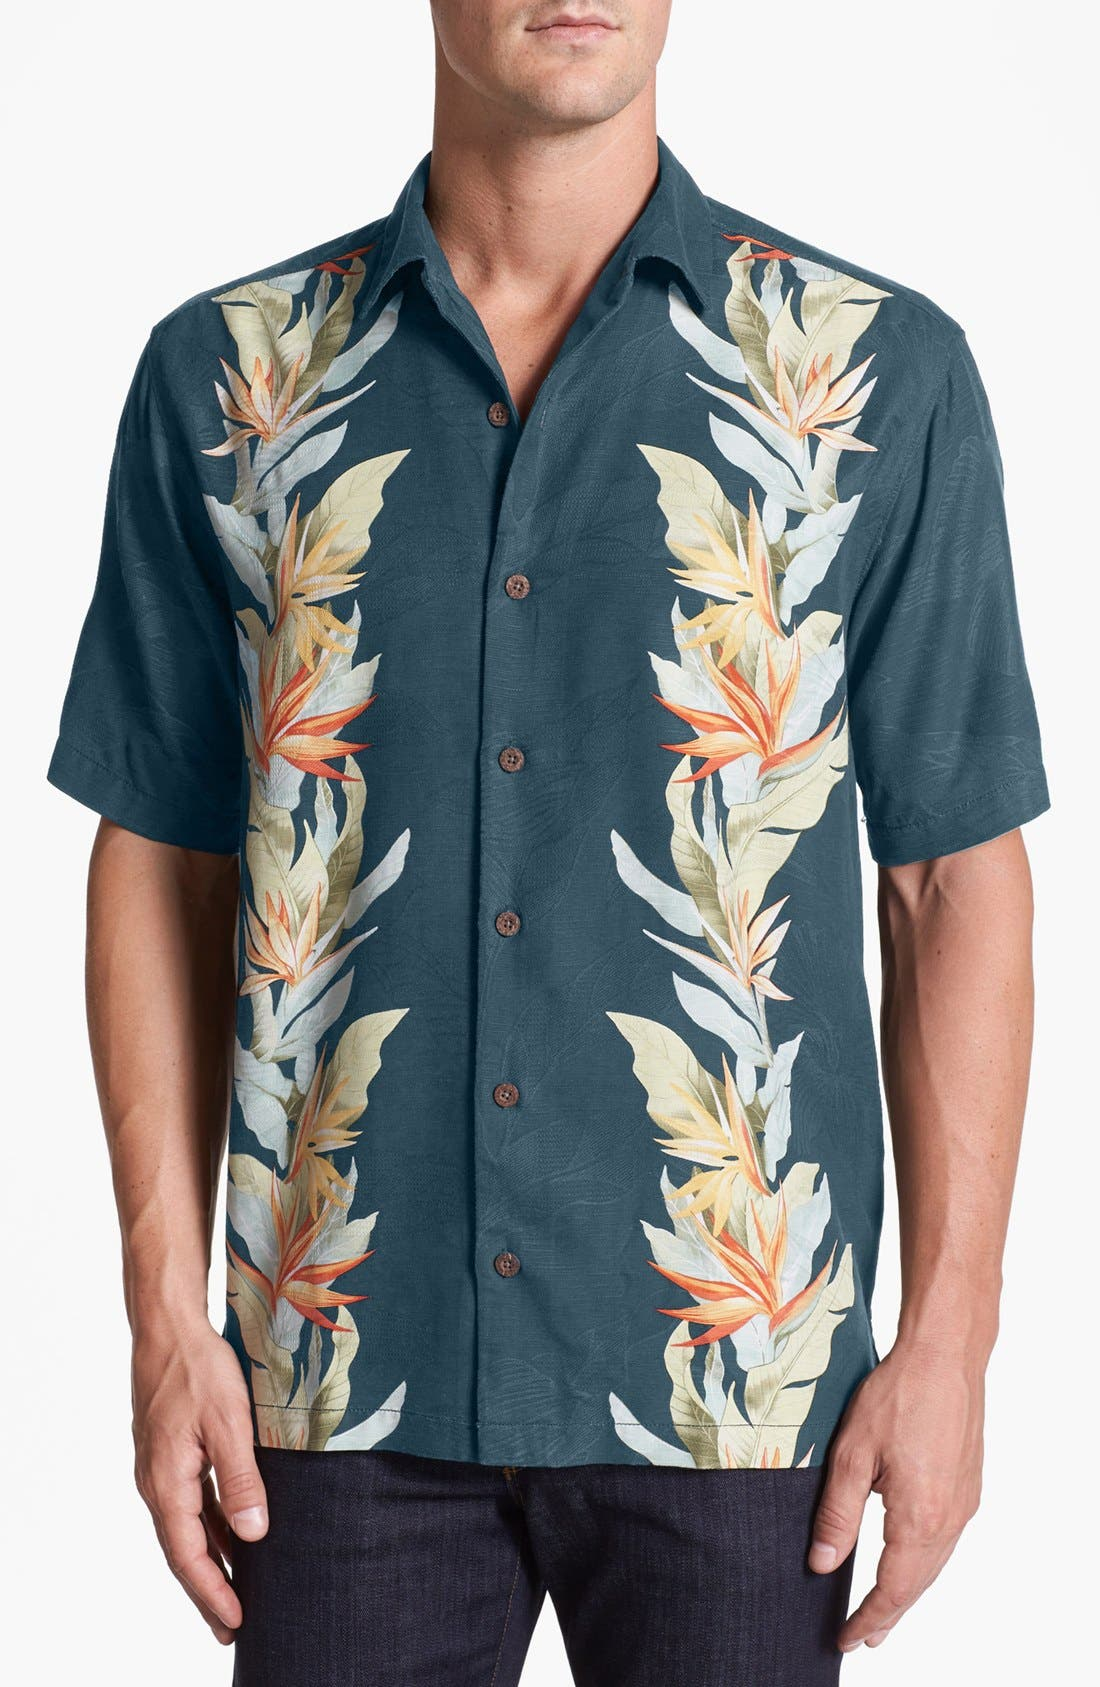 Alternate Image 1 Selected - Tommy Bahama 'Tropic of Parallel' Campshirt (Big & Tall)